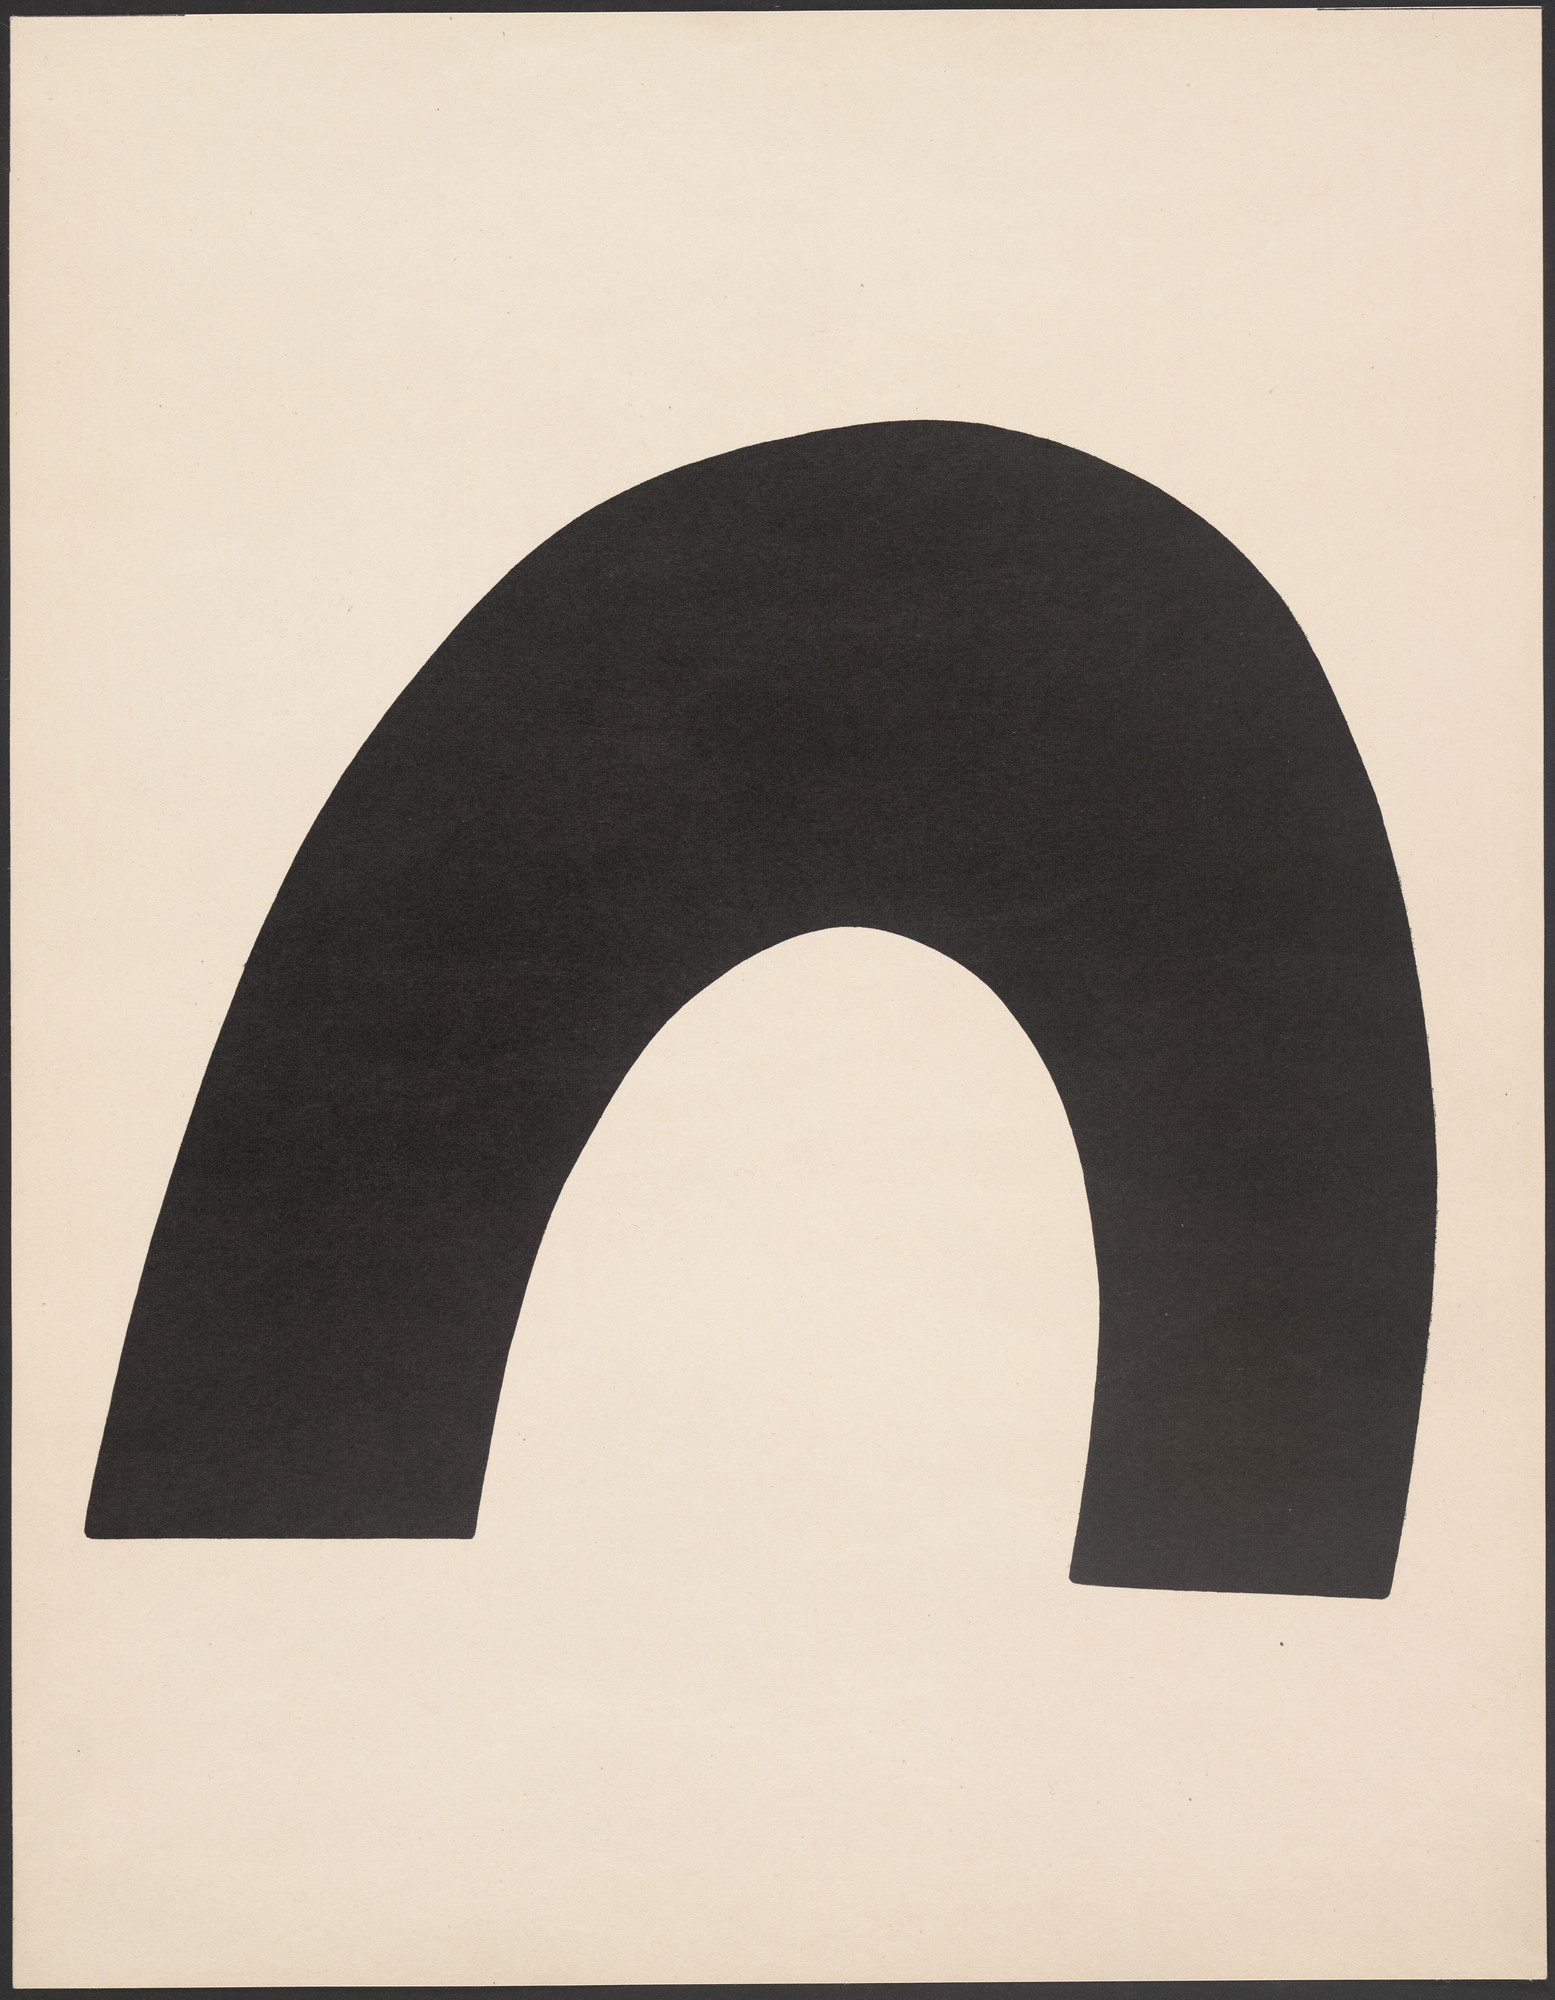 Jean (Hans) Arp. The Sea (Das Meer) from Merz 5. 7 Arpaden by Hans Arp. Arp Portfolio. Second Portfolio of the Merz Publisher (Merz 5. 7 Arpaden von Hans Arp. Arp Mappe. Zweite Mappe des Merzverlages). 1923